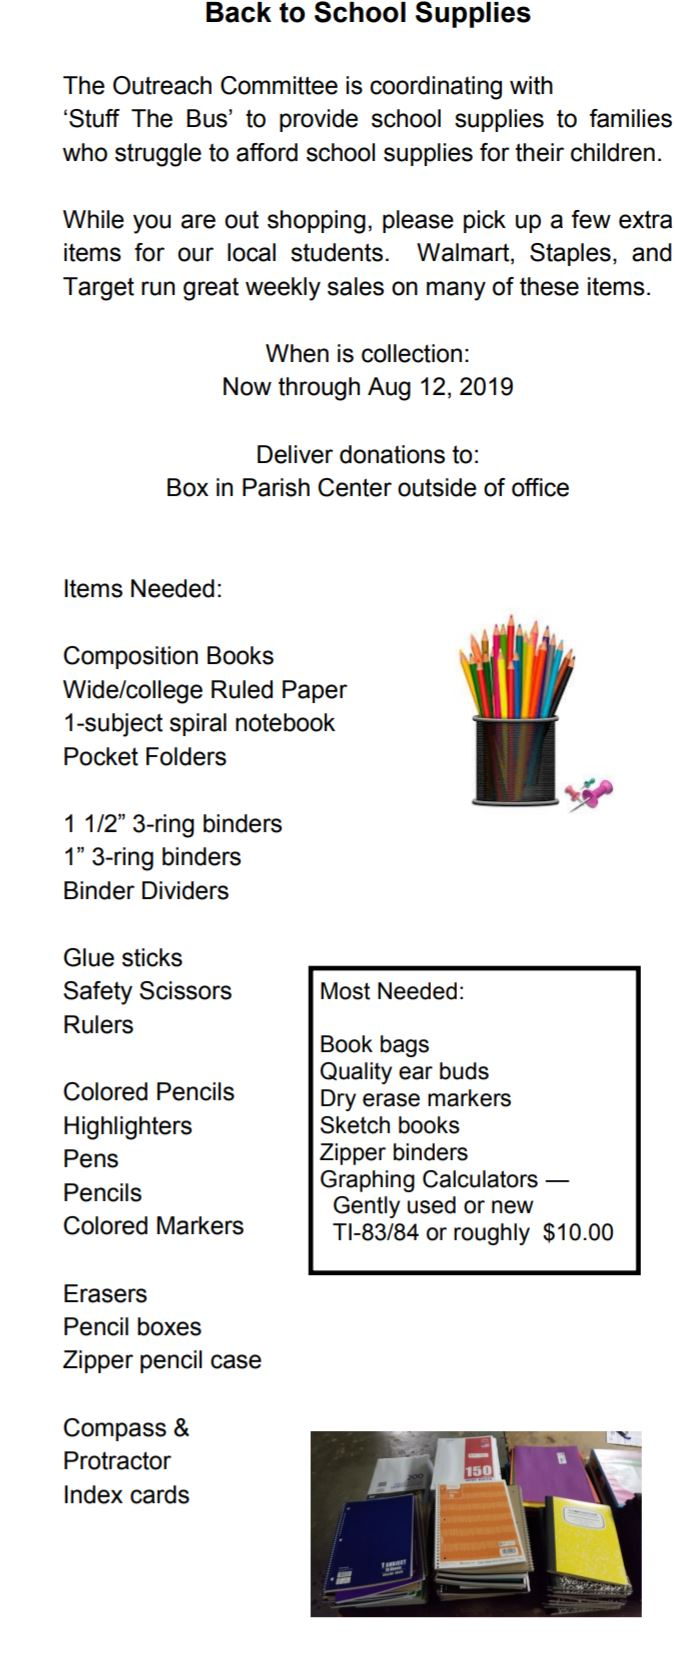 , Back to School Supplies for Those in Need, St. Joseph-on-Carrollton Manor Catholic Church, St. Joseph-on-Carrollton Manor Catholic Church